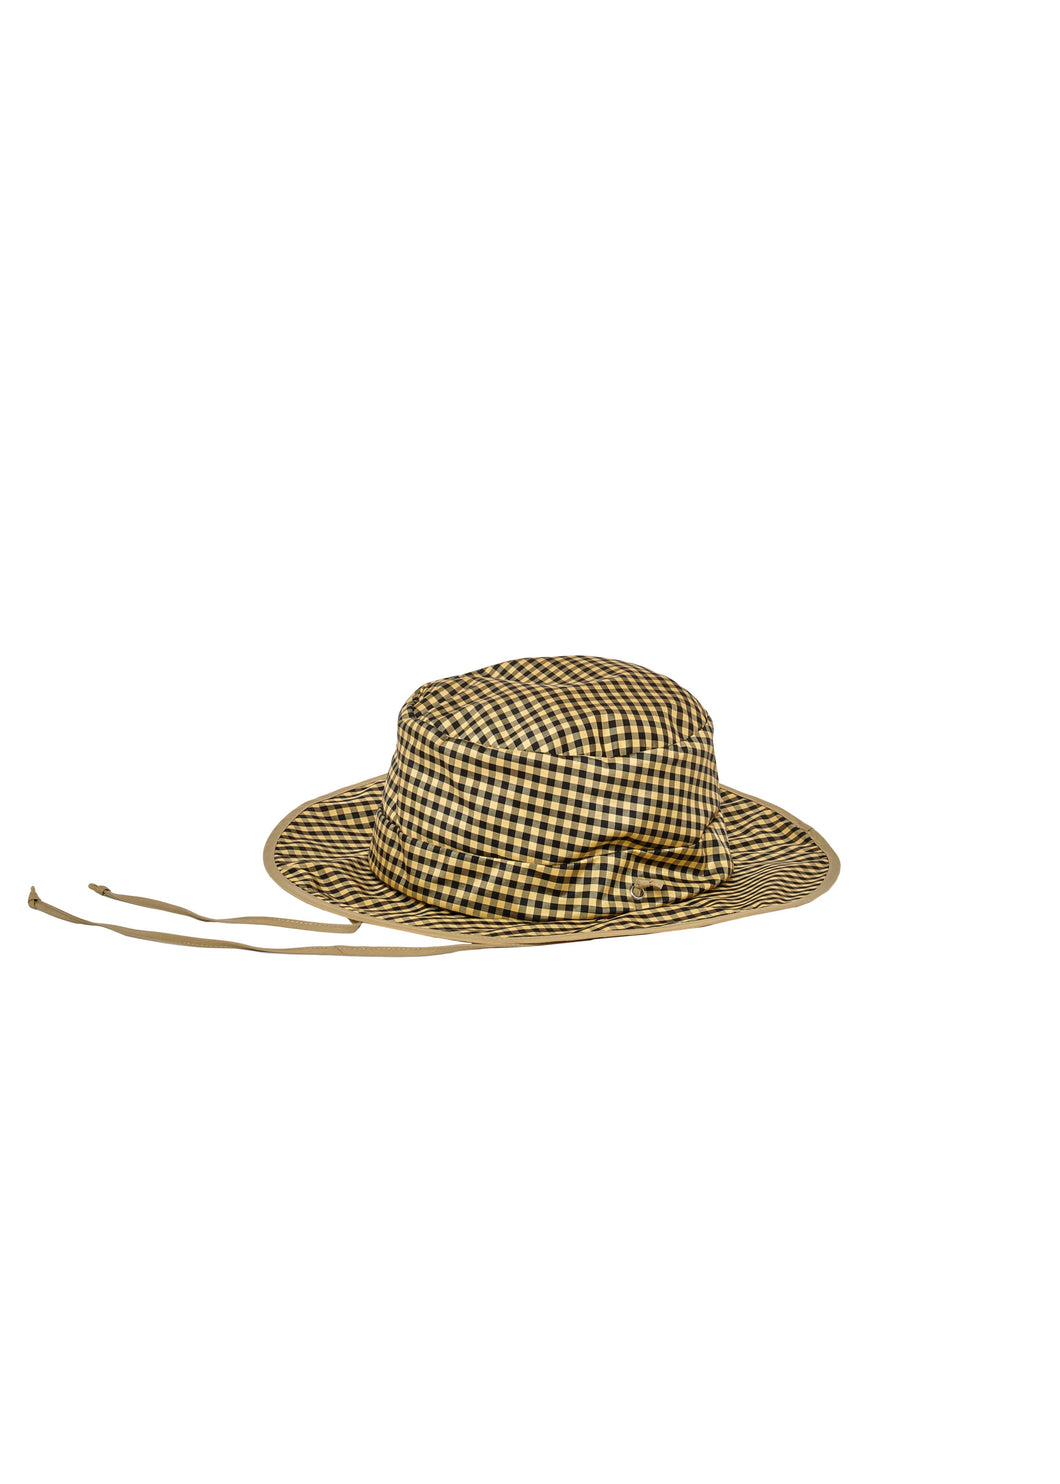 Reversible Tan Nylon + Gingham Black Yellow Foldable Hat